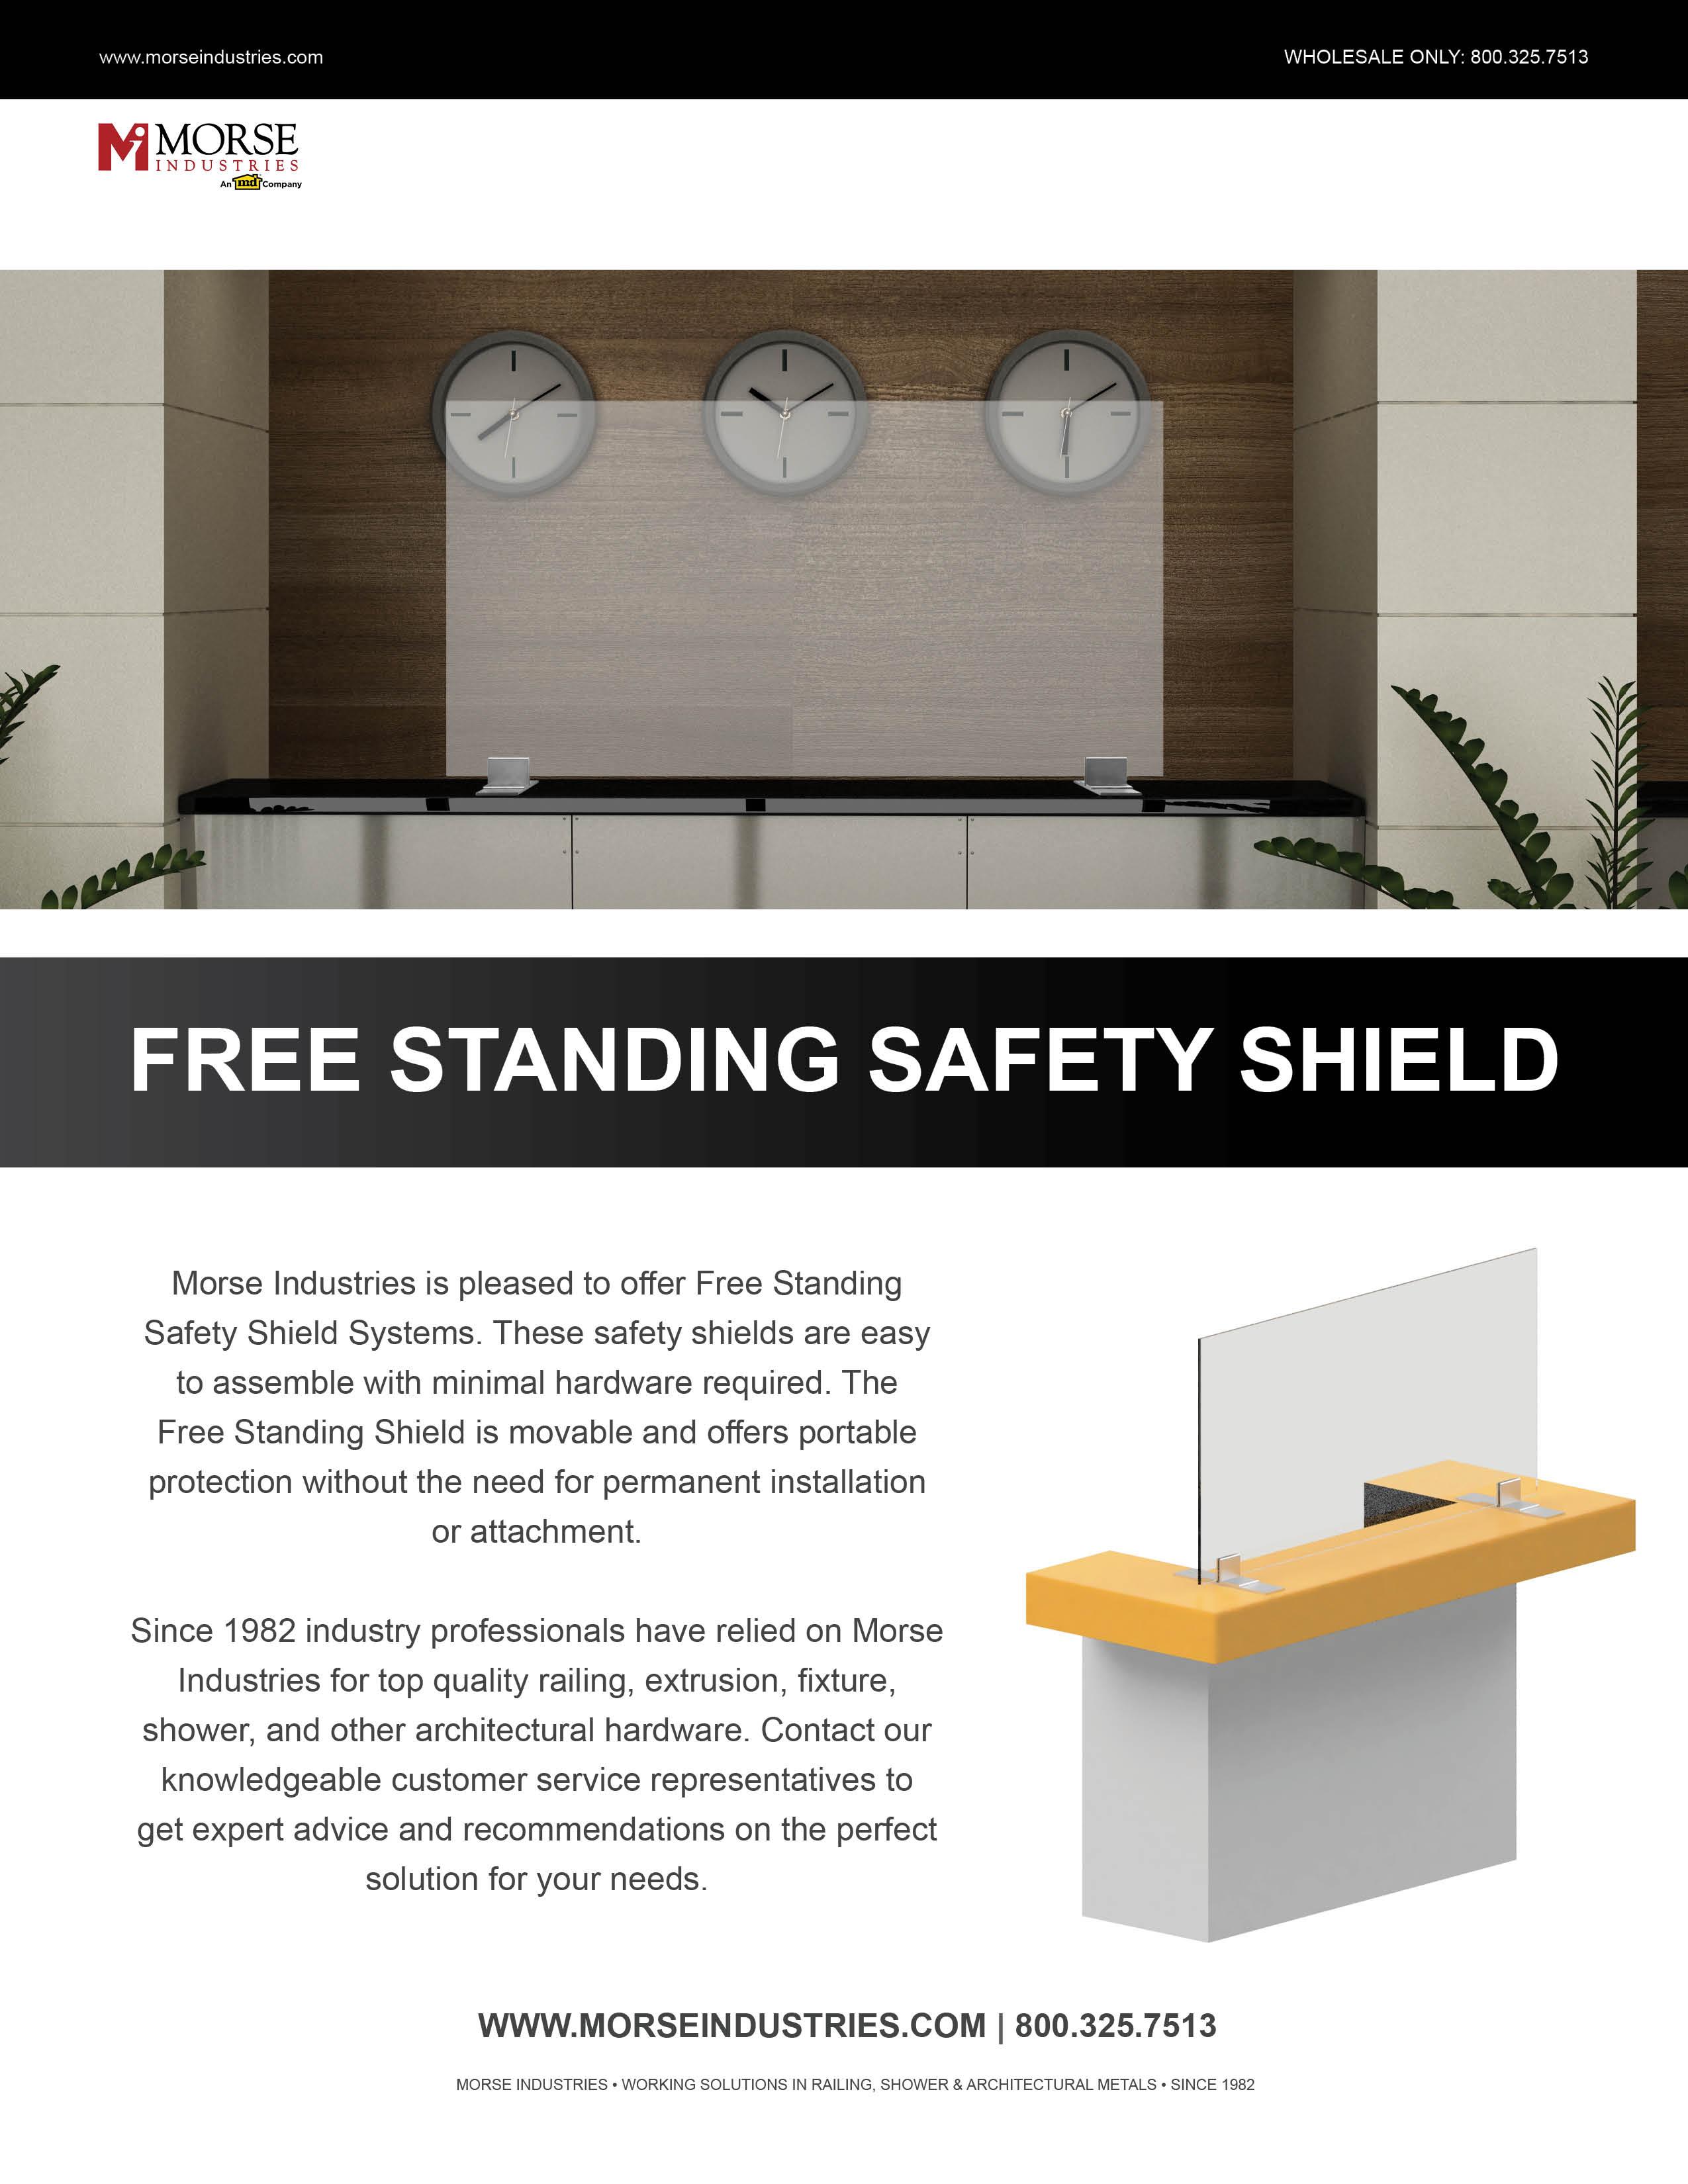 Free Standing Safety Shield